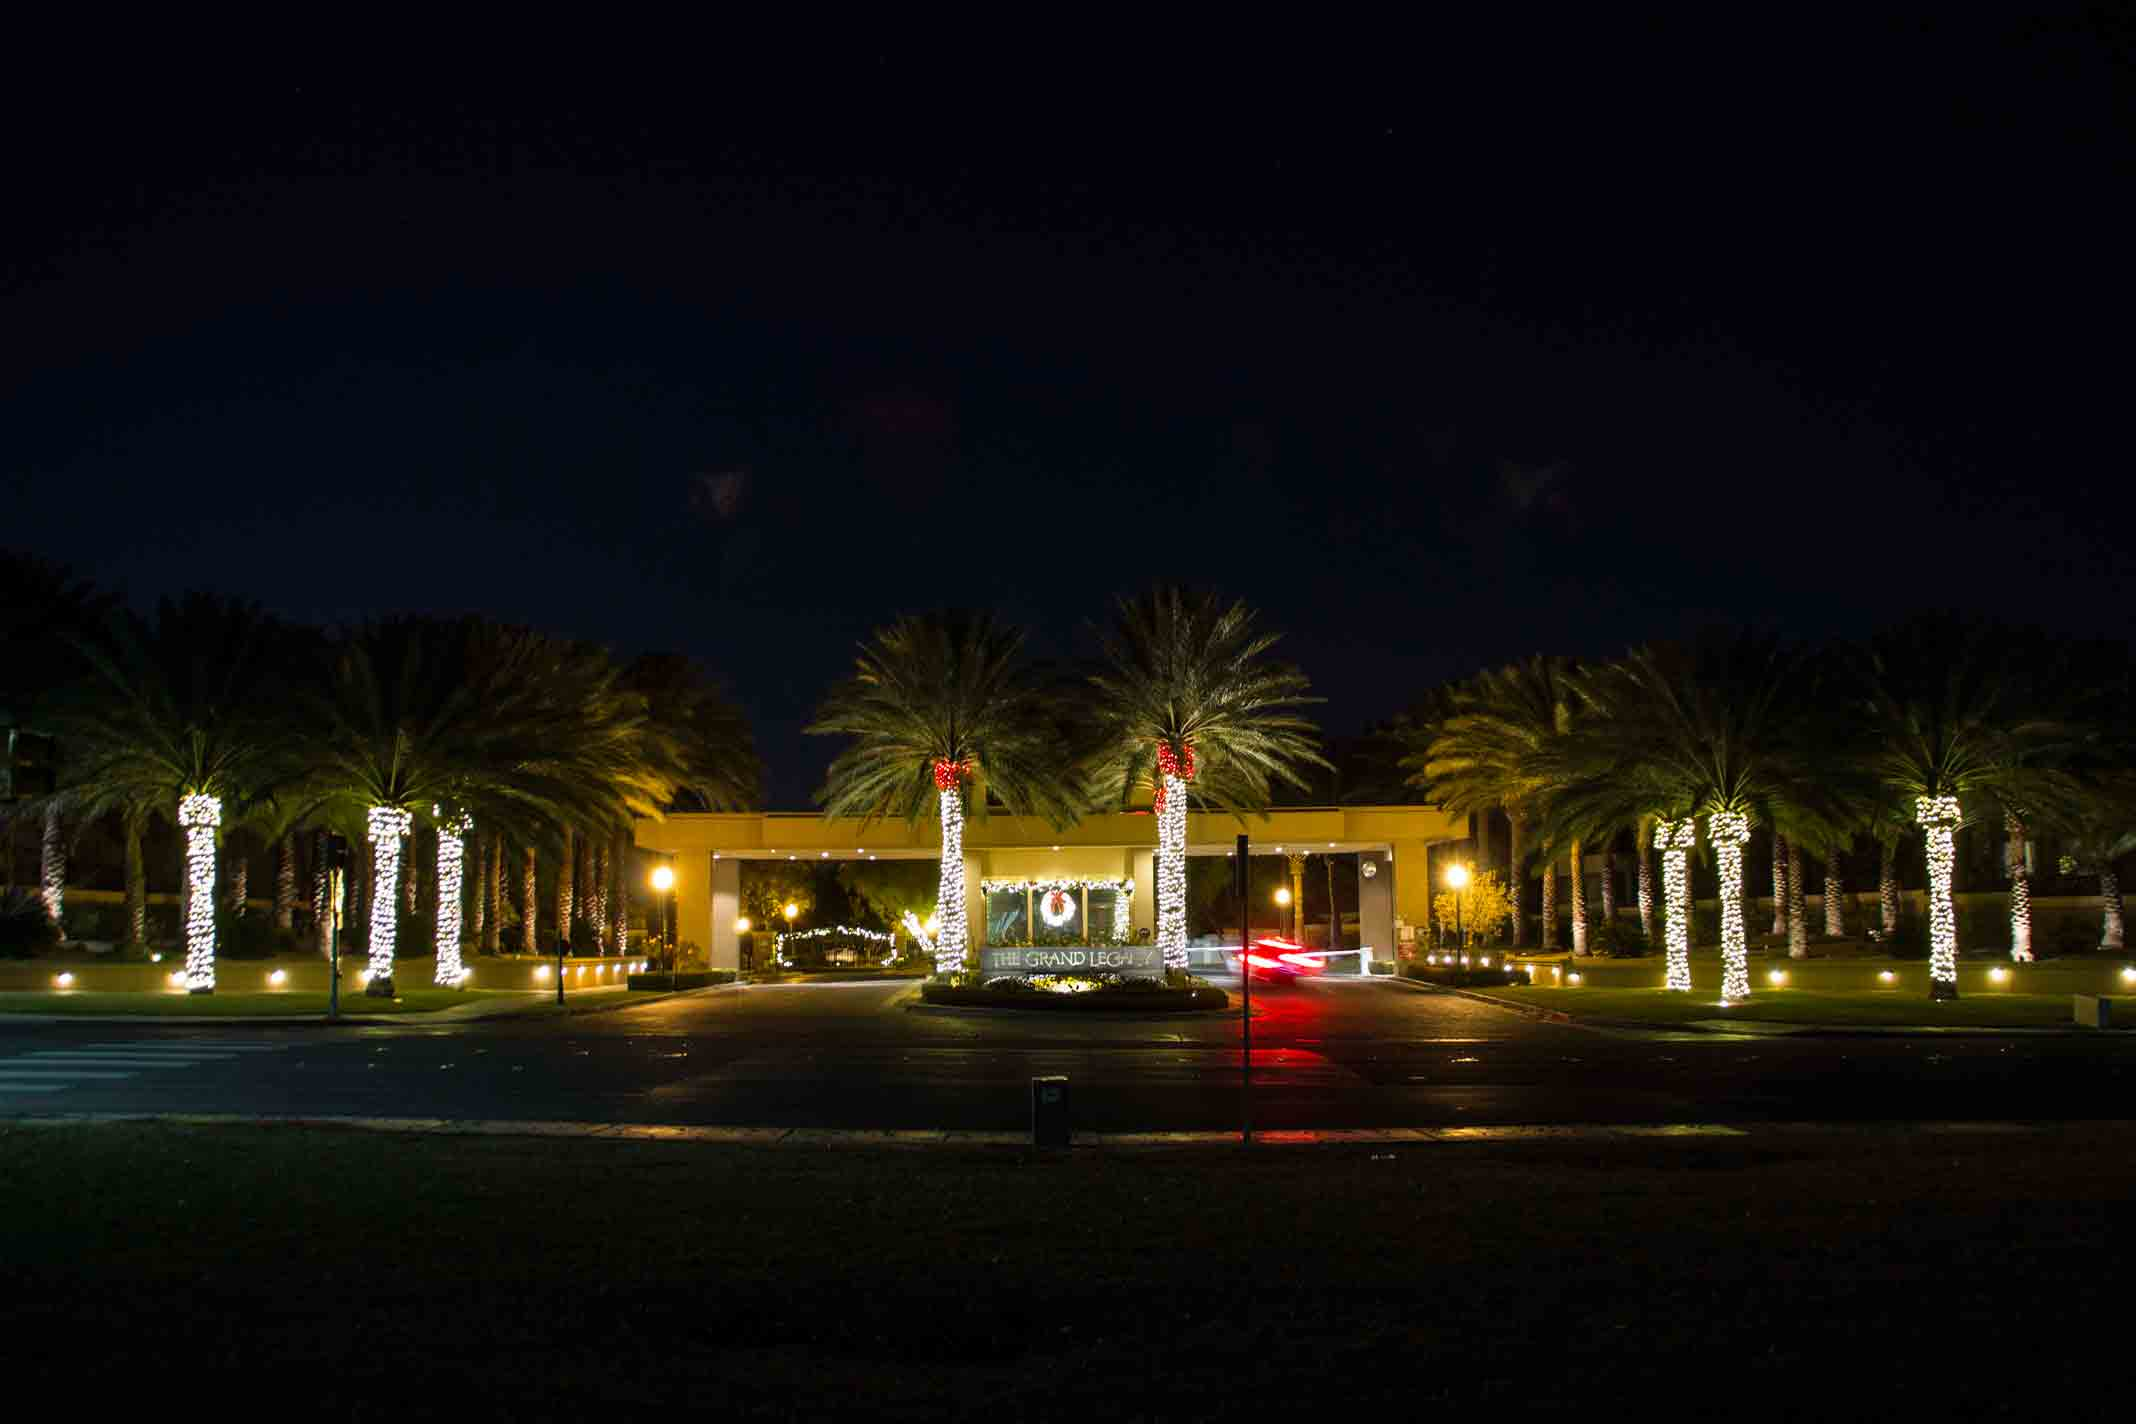 Community LED Christmas lighting rental by Holiday Decorations in Las Vegas